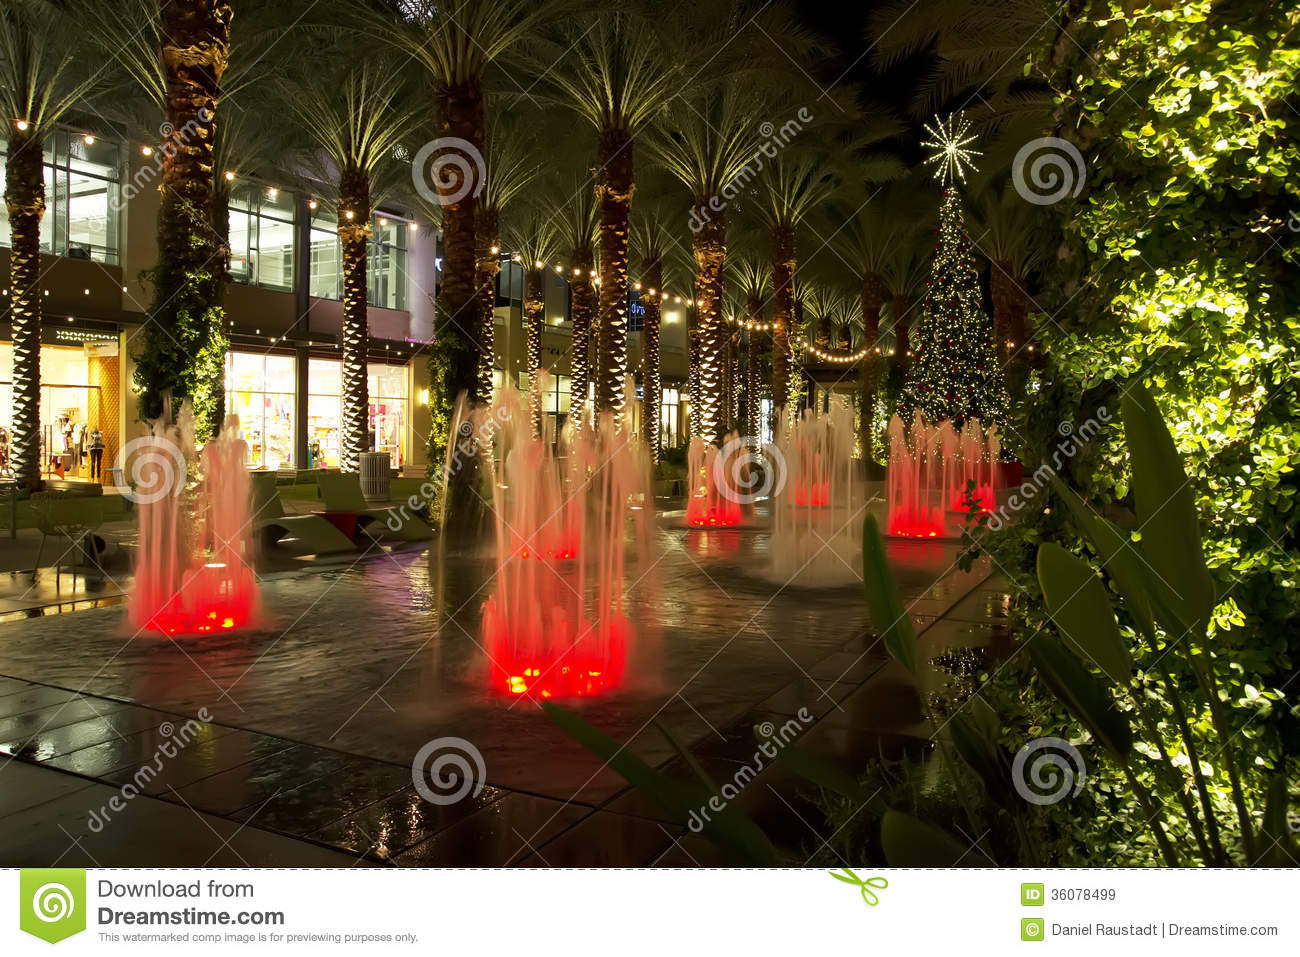 arizona shopping mall christmas tree and lighted palm trees